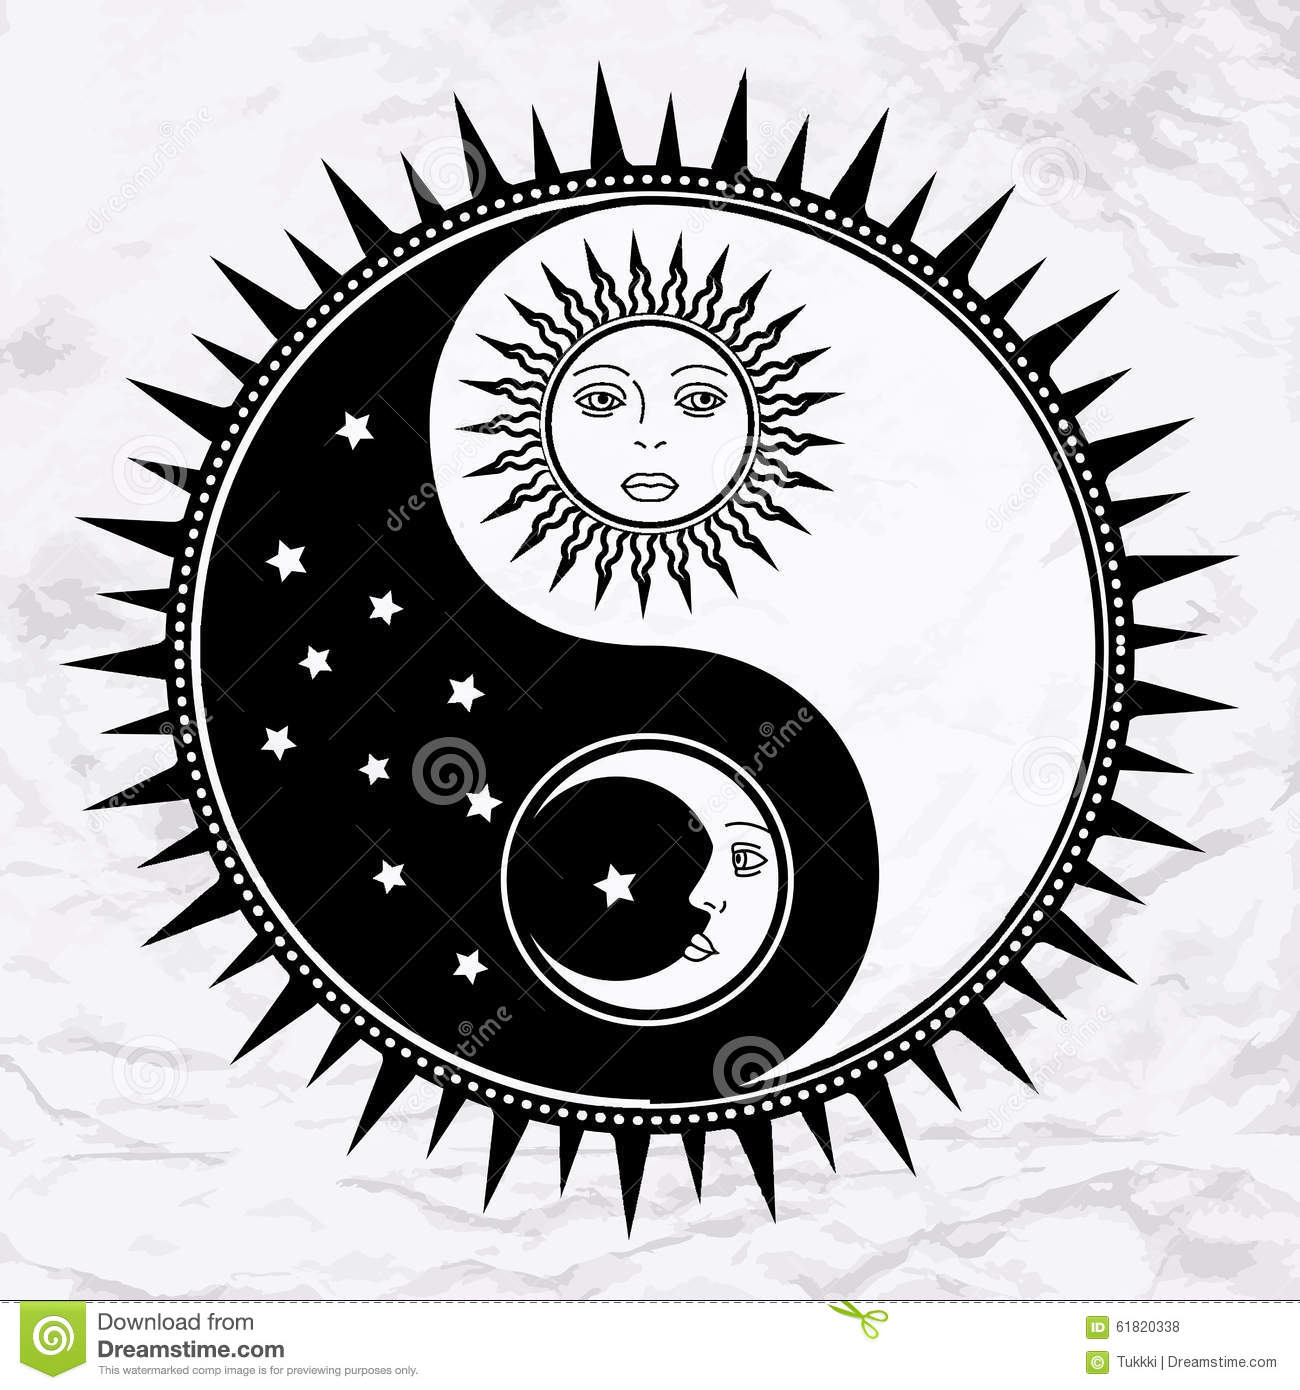 symbol yin yang mit mond und sonne vektor abbildung illustration von magie kreis 61820338. Black Bedroom Furniture Sets. Home Design Ideas